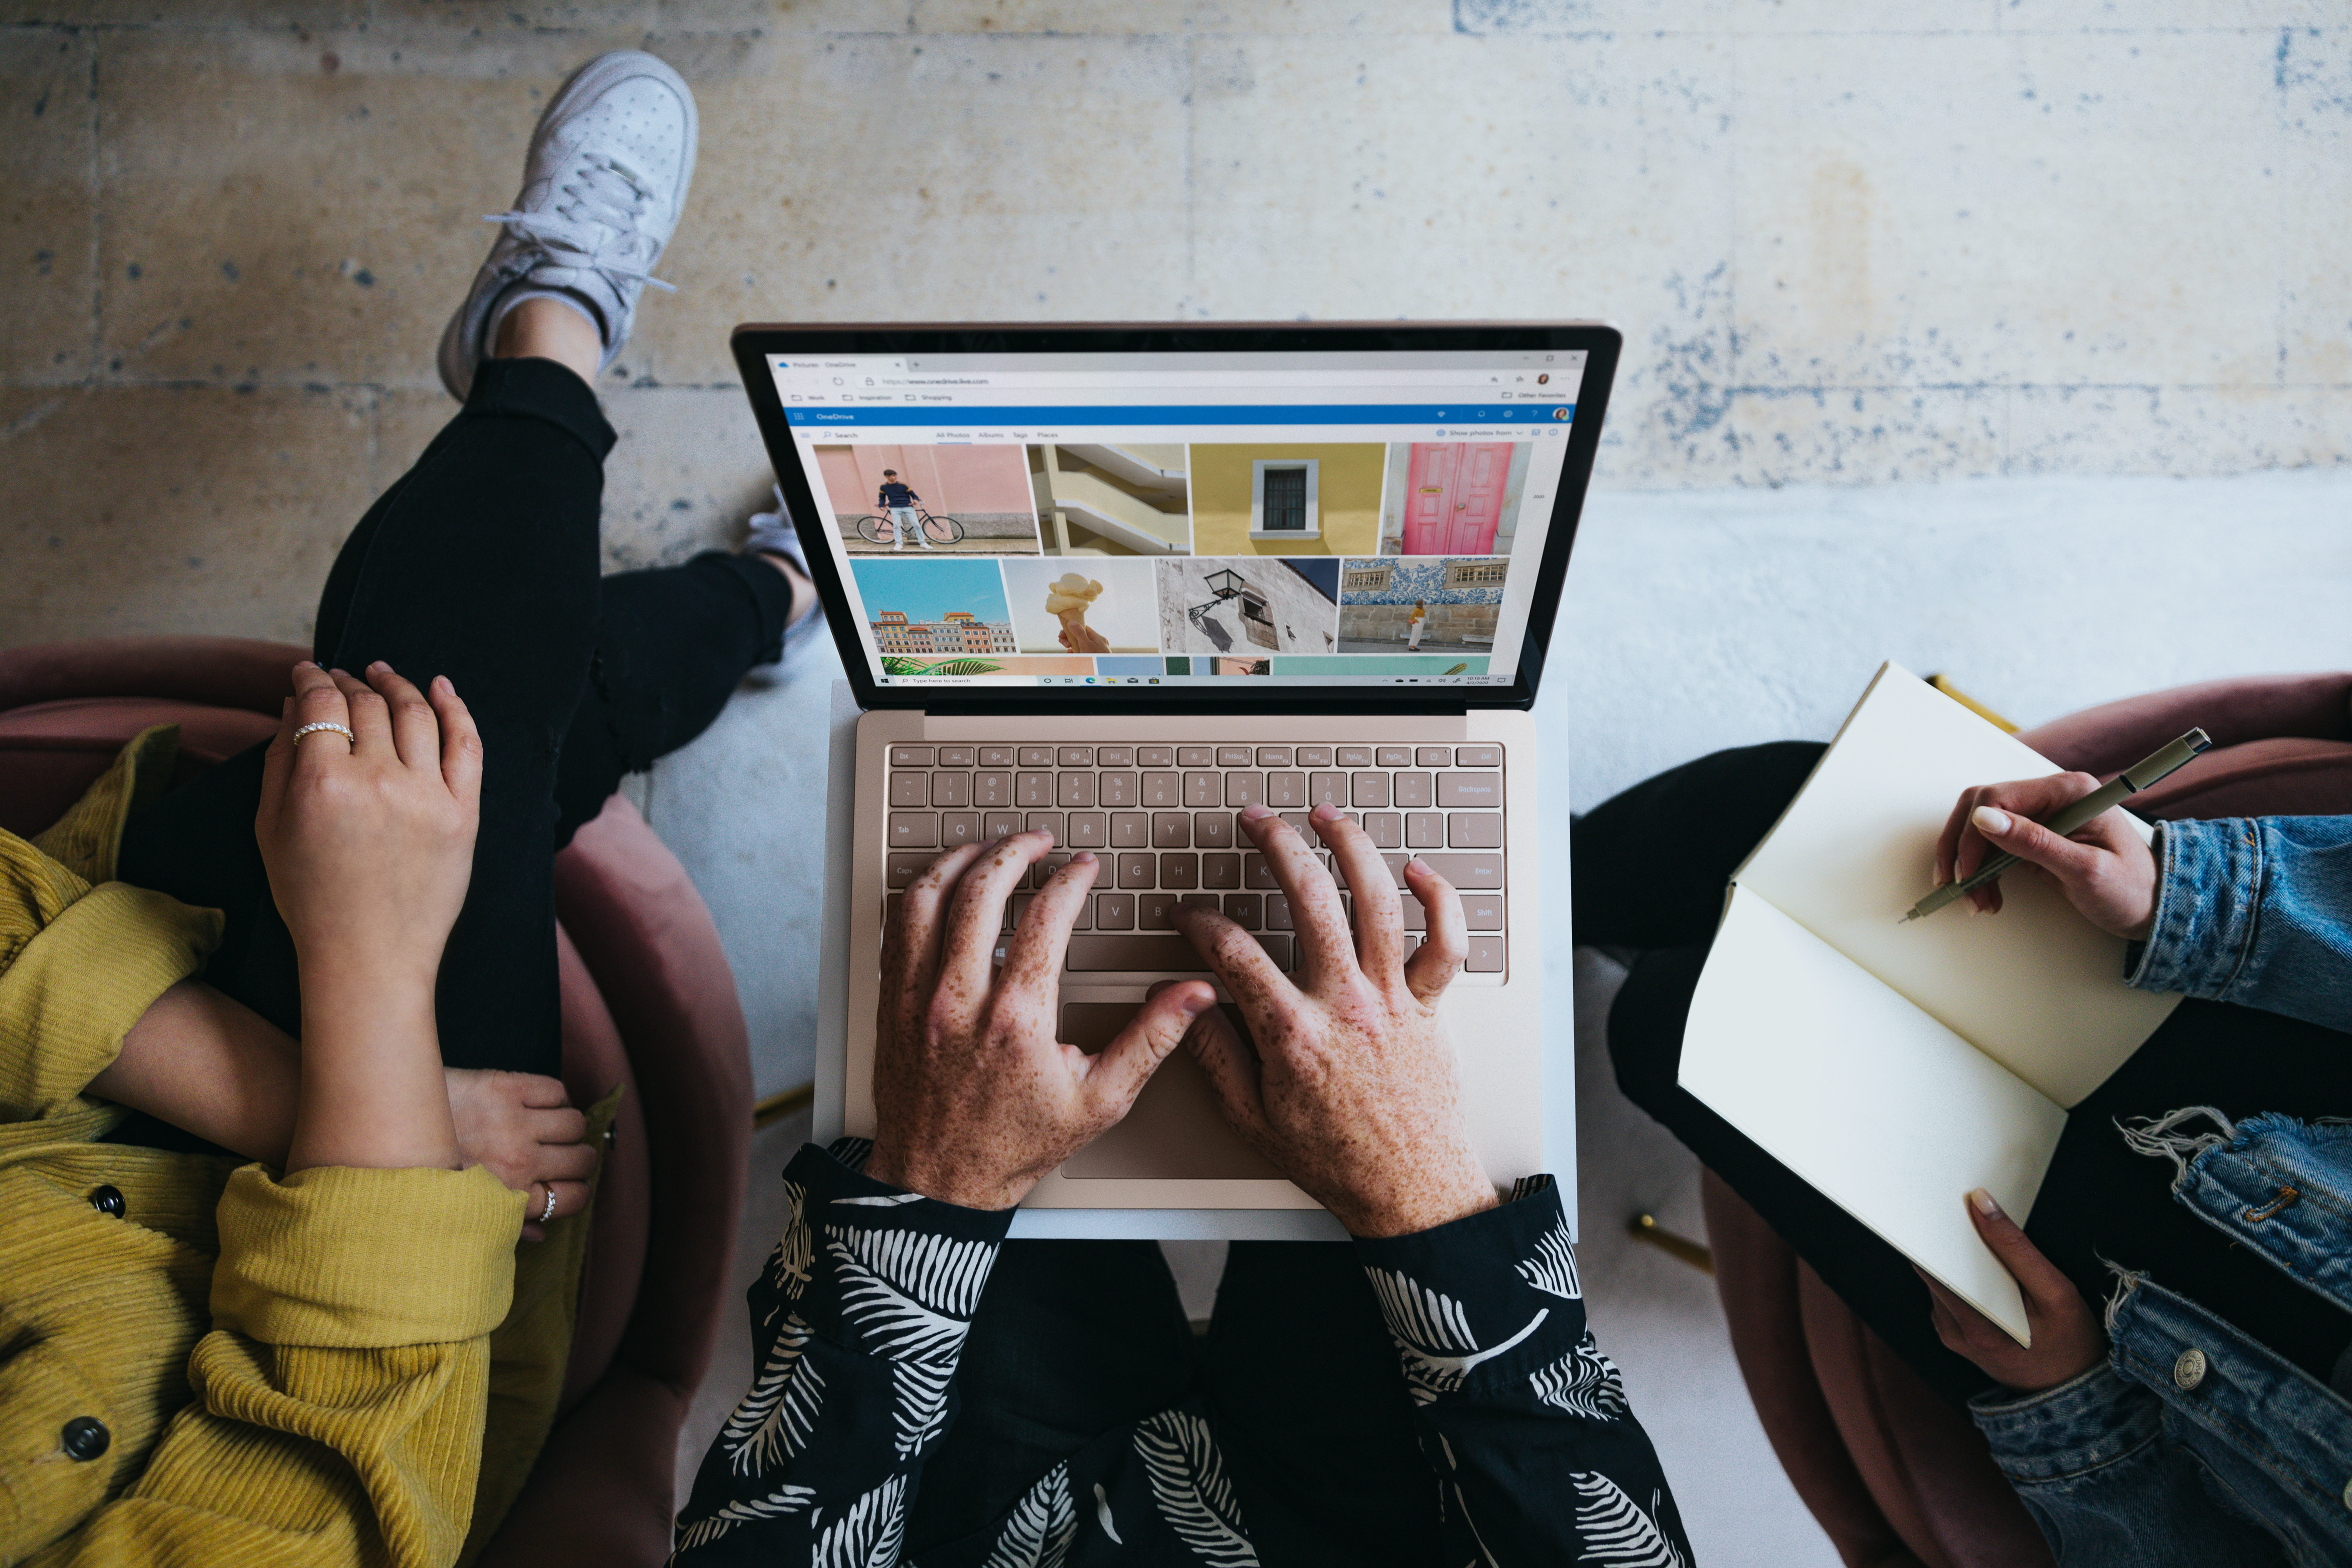 web design tools for collaboration